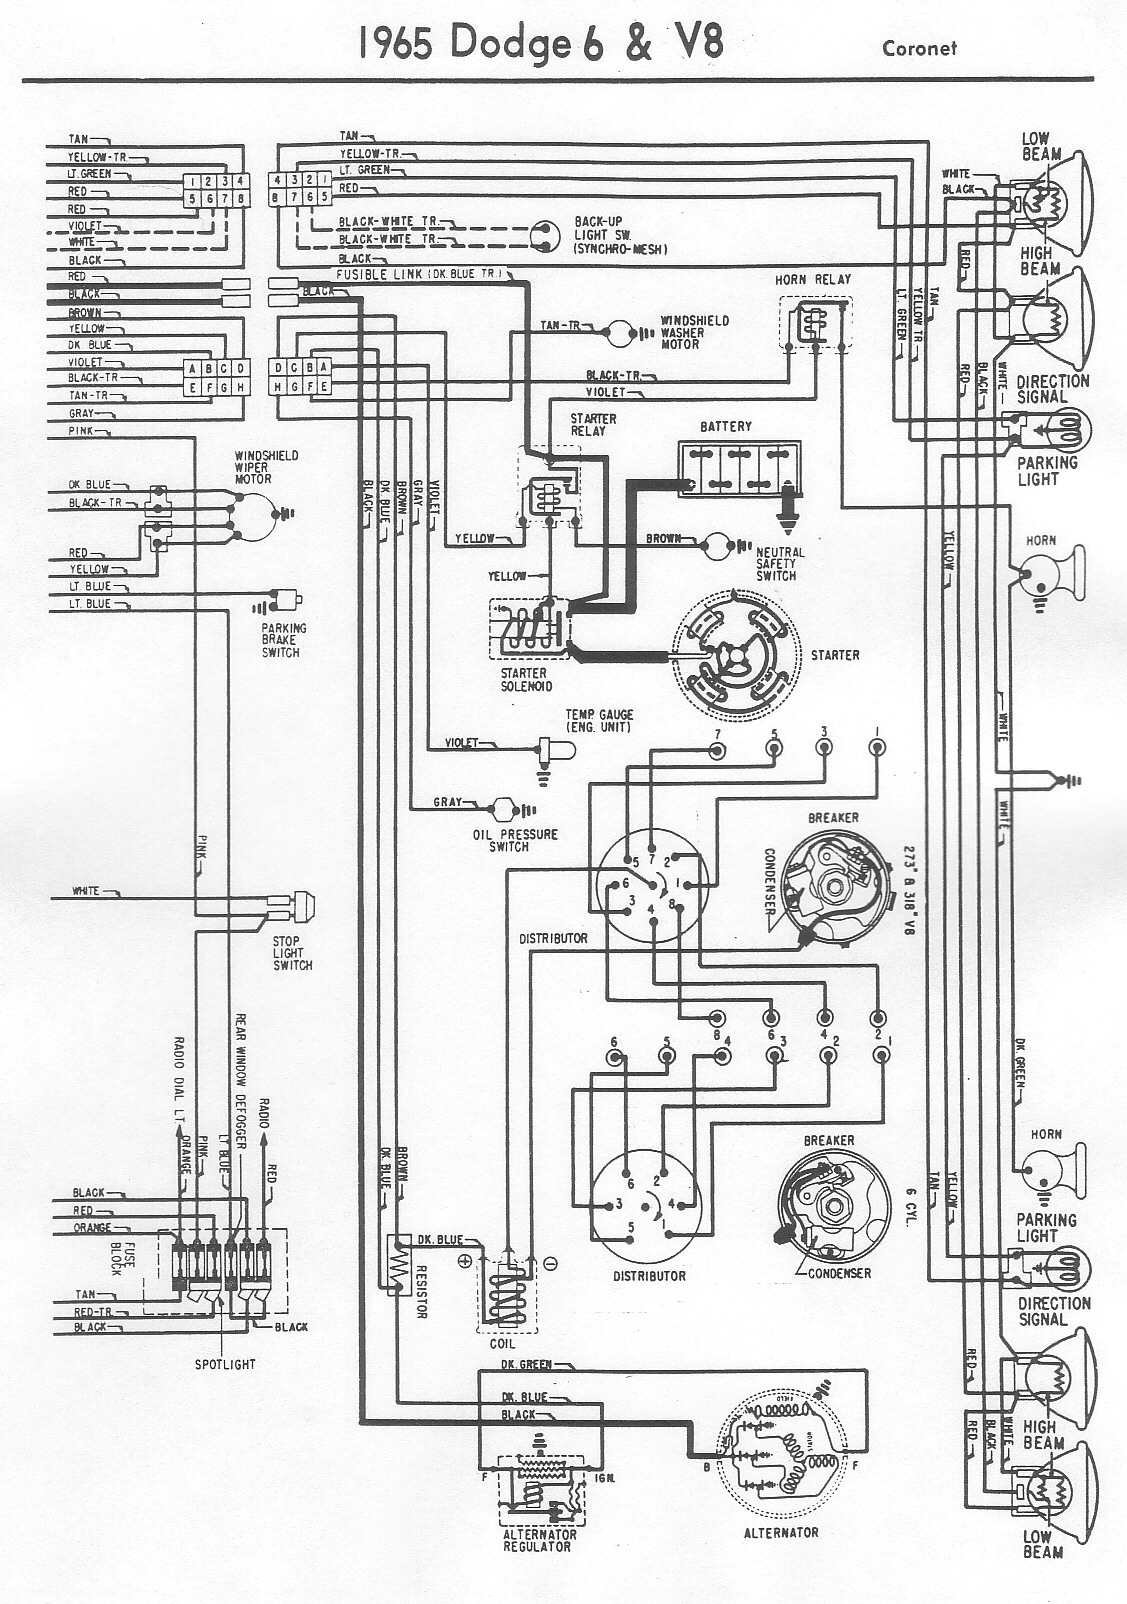 1966 dodge d 300 wiring diagram wiring diagram portal 1966 dodge charger wiring diagram 1963 chrysler [ 1127 x 1604 Pixel ]